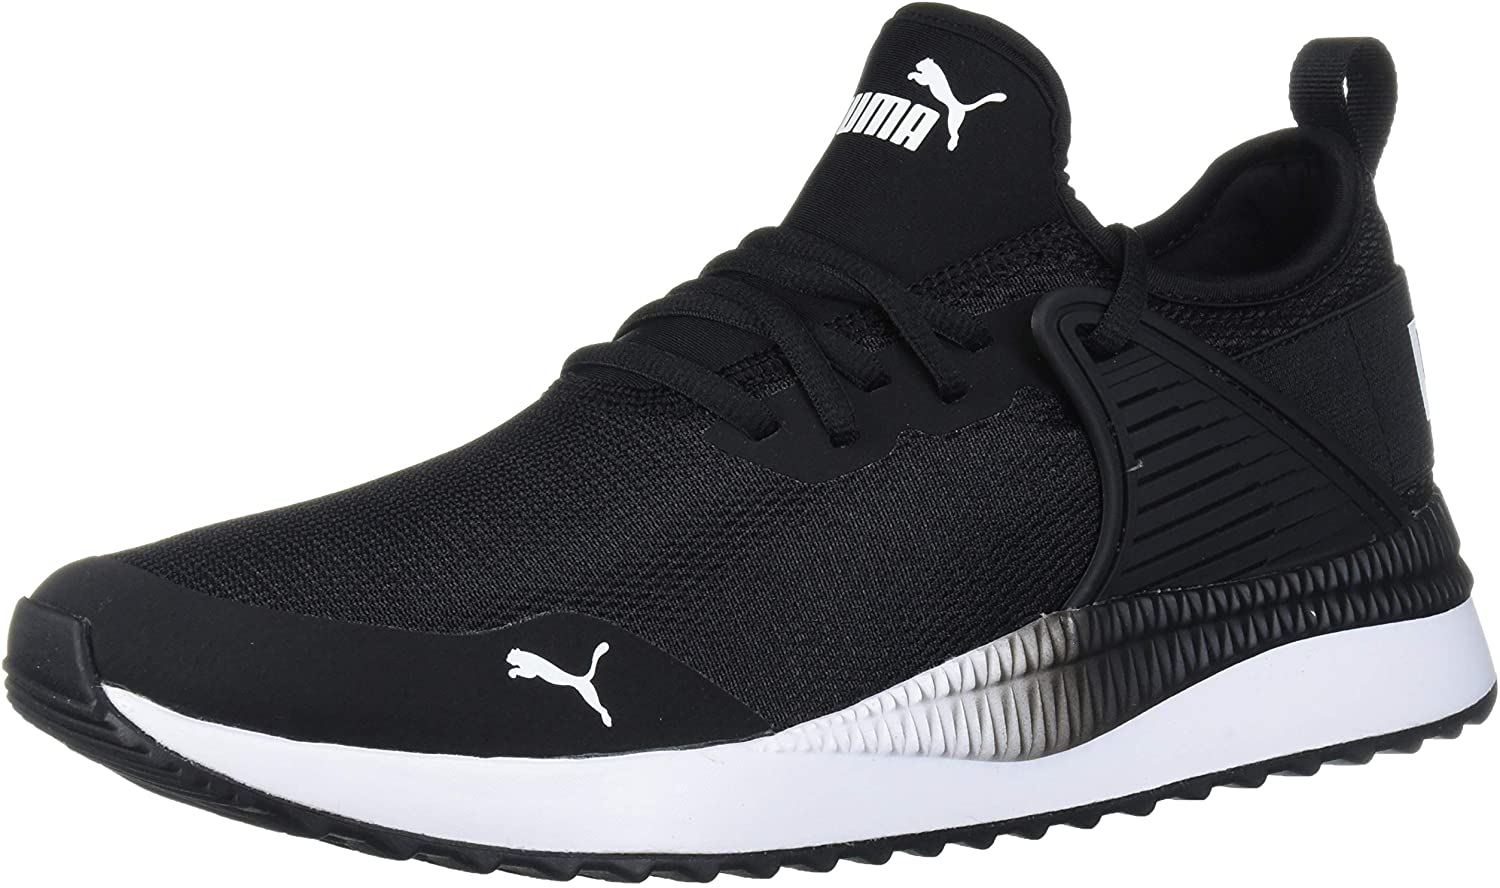 PUMA Men's Very popular! Pacer Cage Sneaker Next